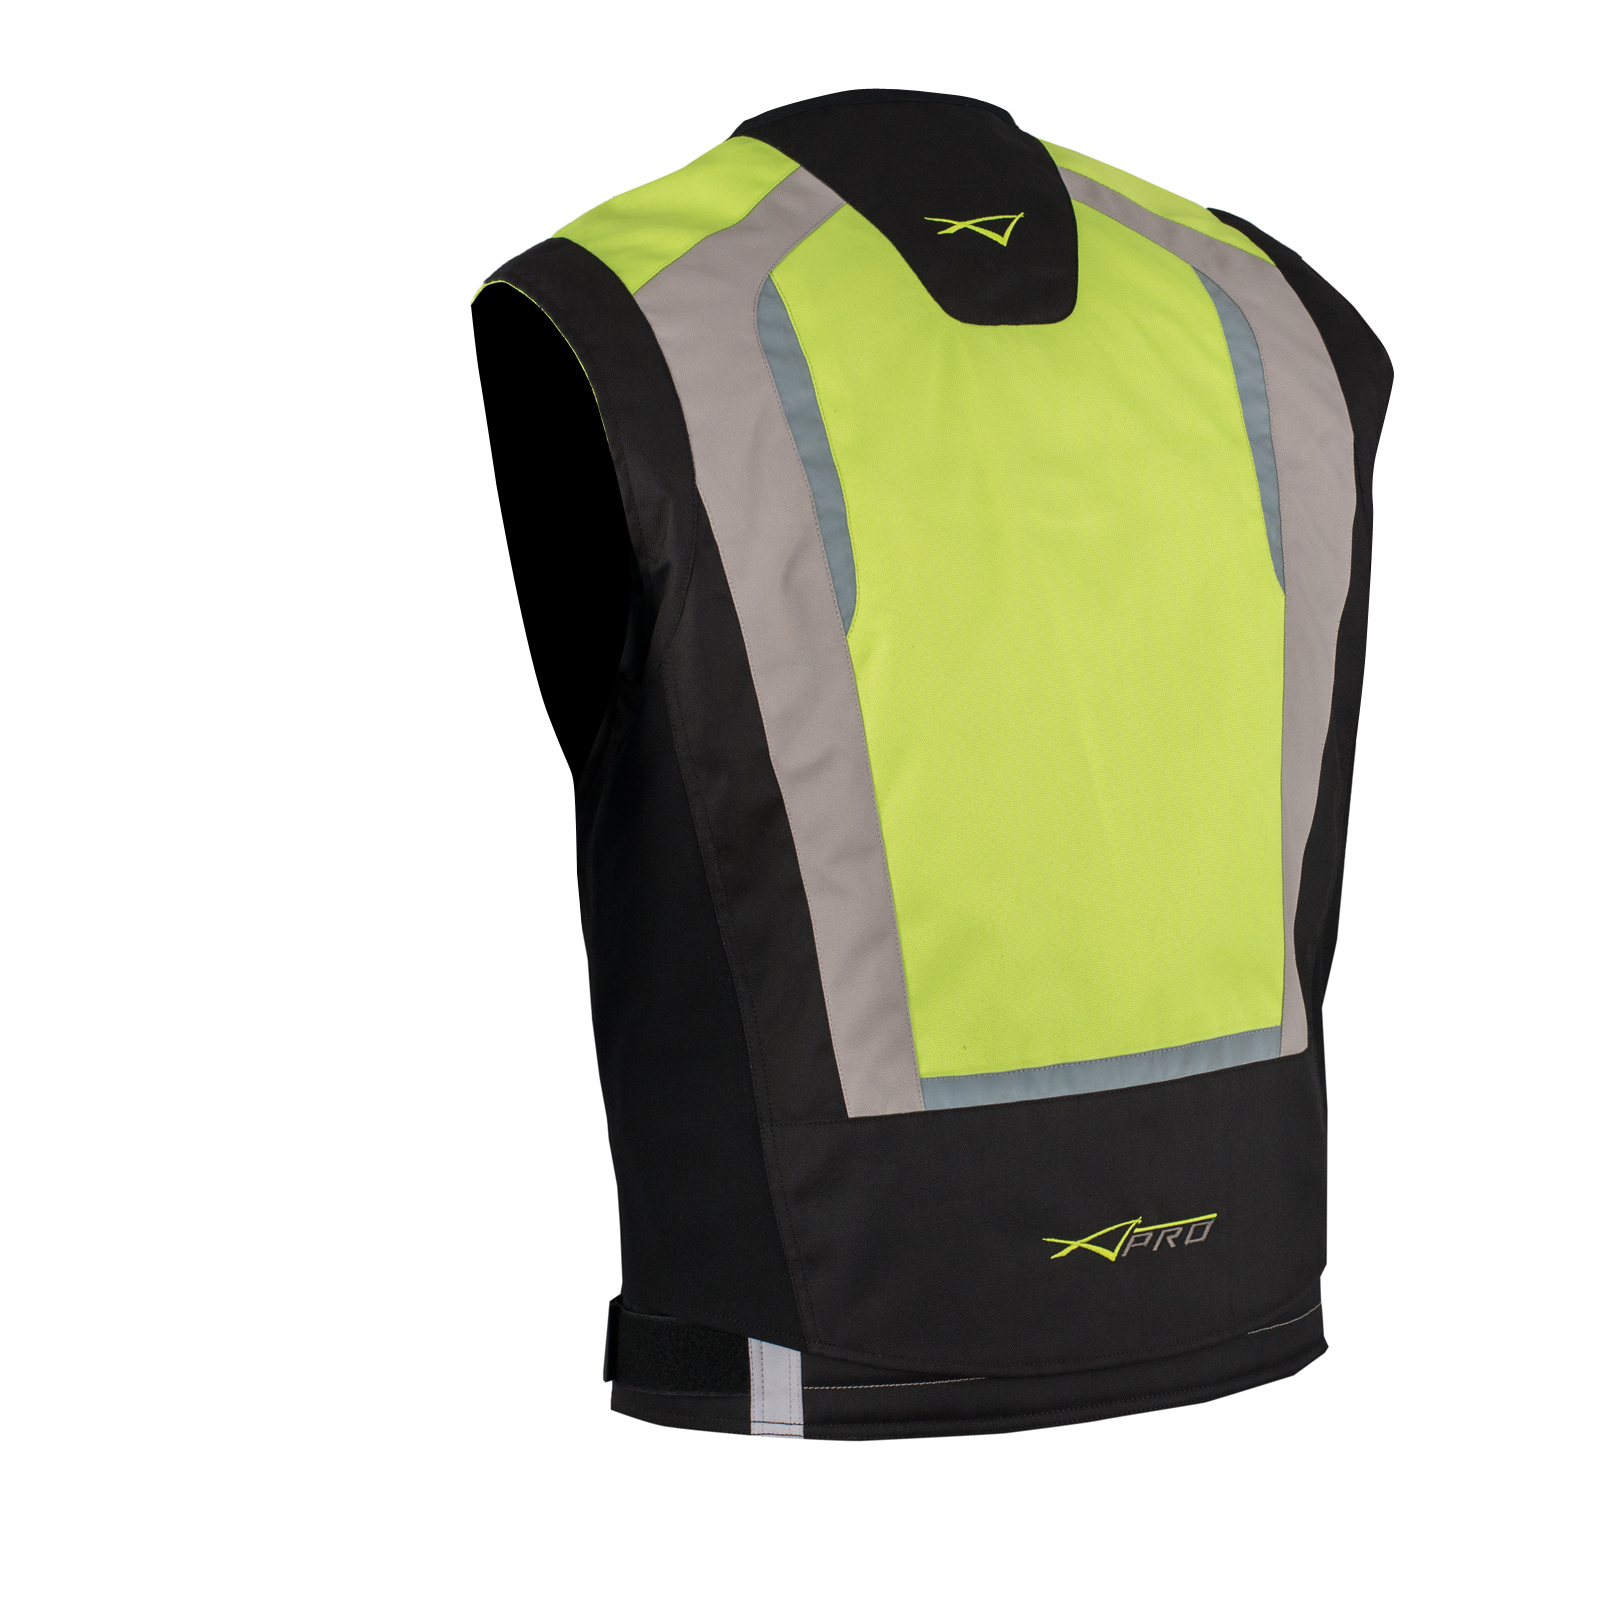 gilet securit moto v lo haute visibilit s curt vest auto fluo xl ebay. Black Bedroom Furniture Sets. Home Design Ideas